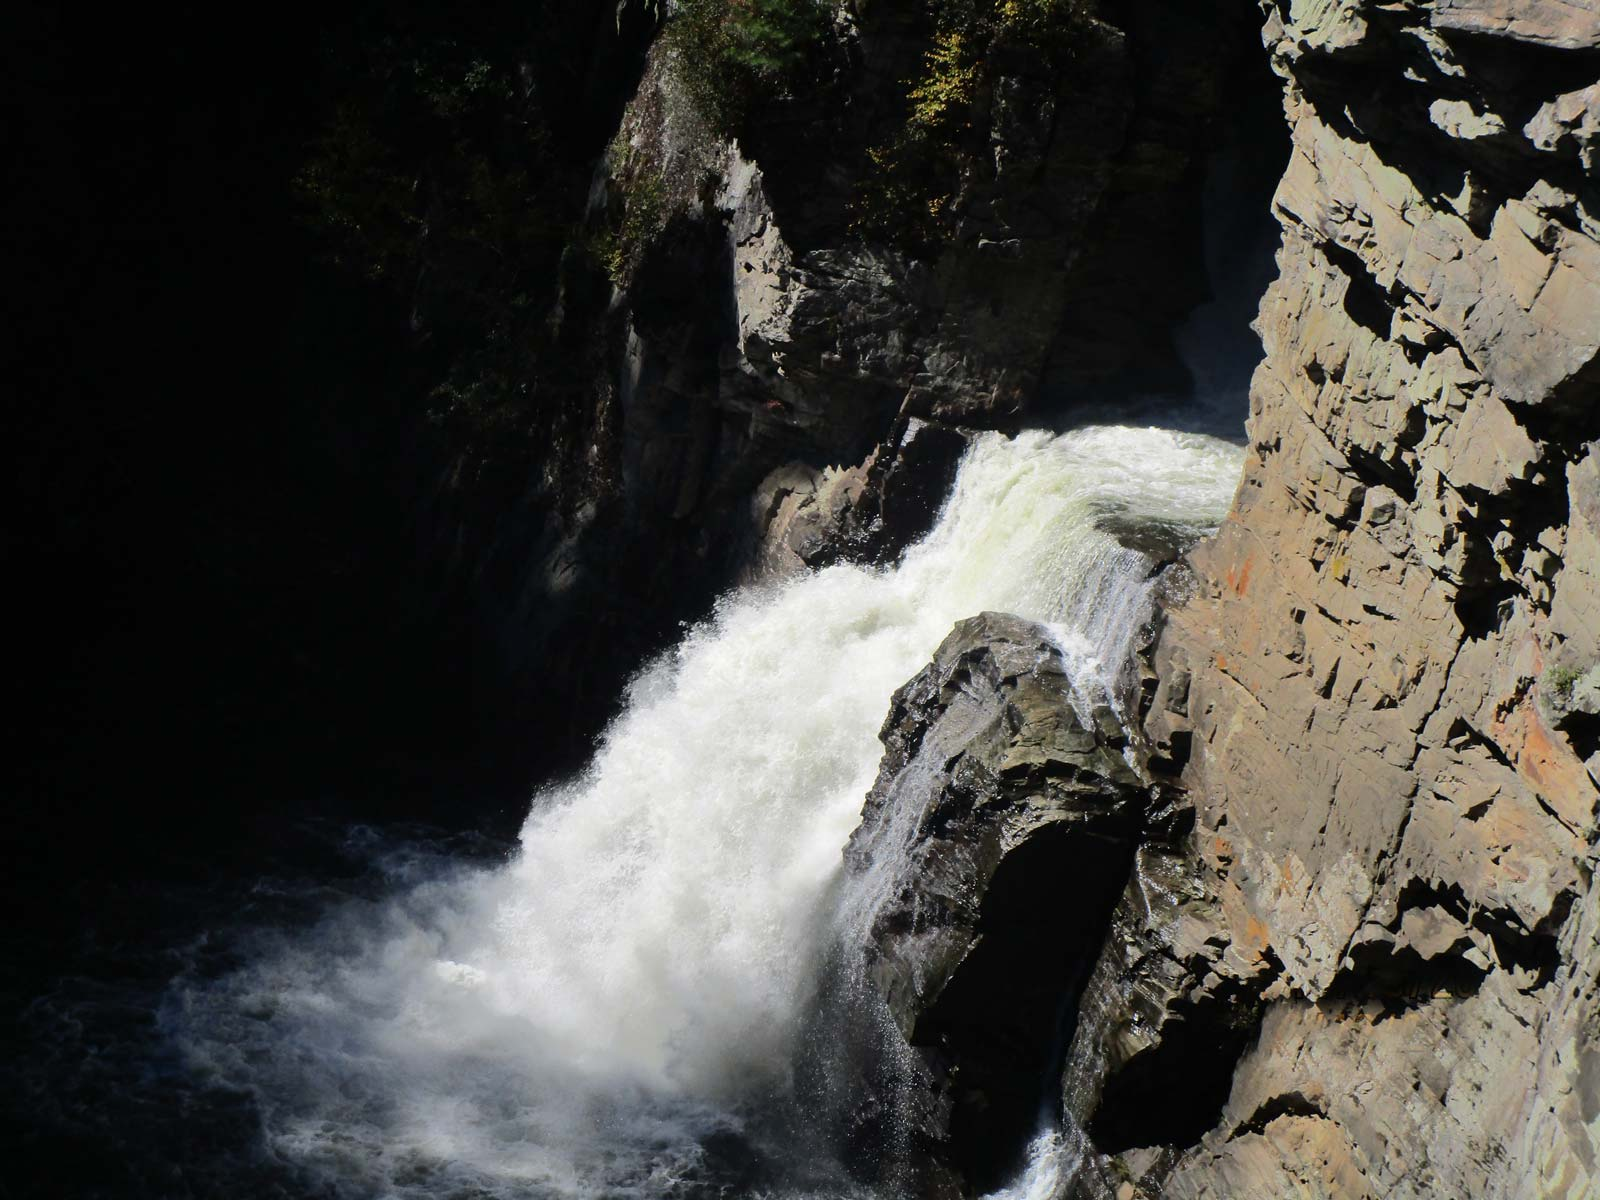 Hiking and viewing the rushing waters of overlook to Linville Falls Trail, off Blue Ridge Parkway, North Carolina